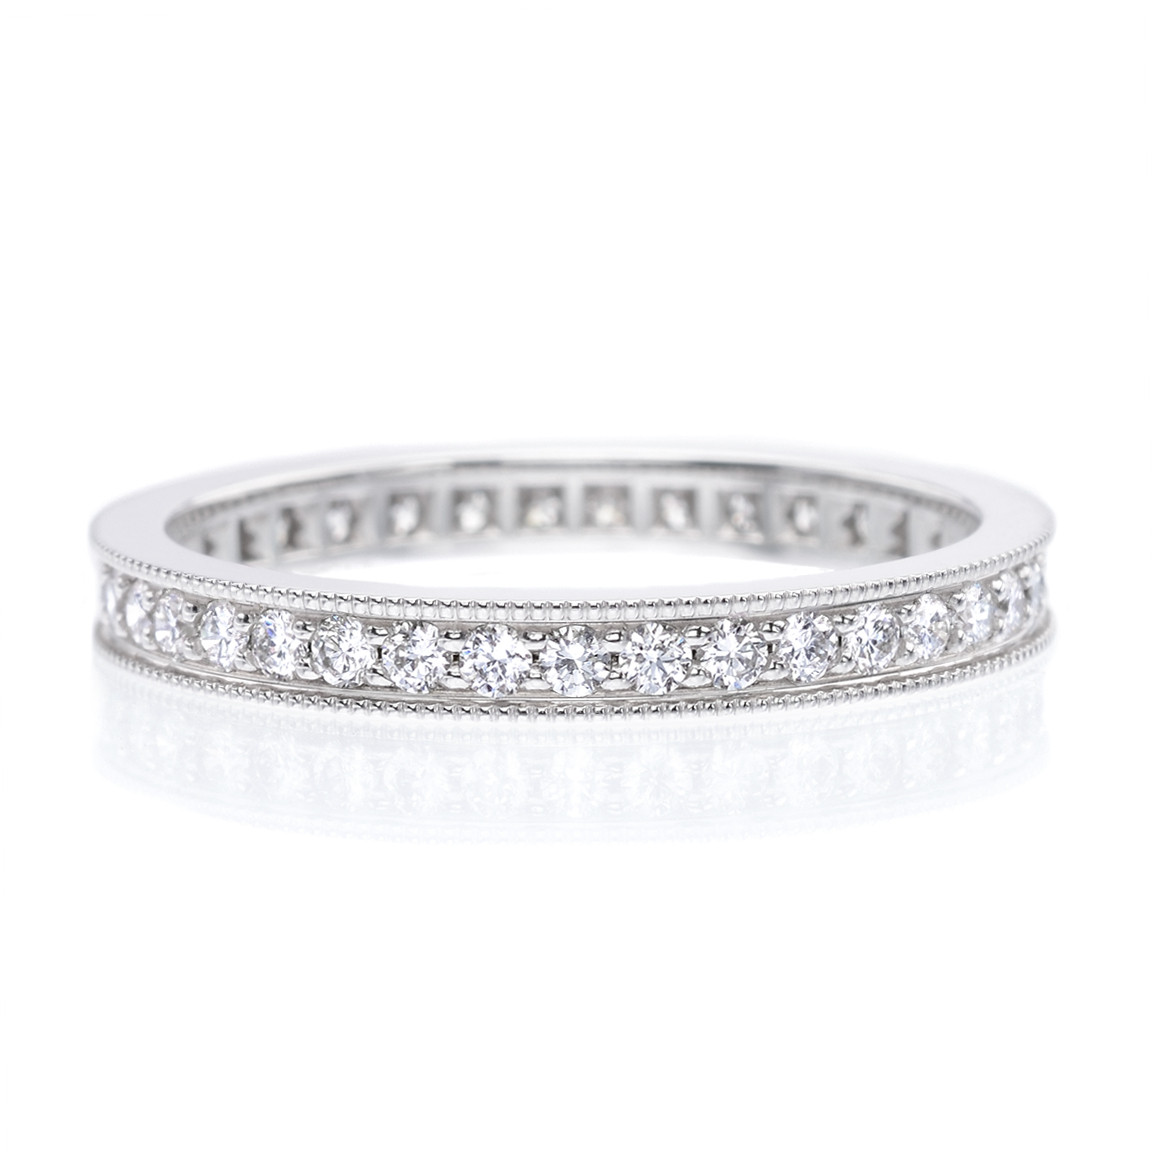 Long's 18K White Gold Bead Set Diamond Eternity Band With Milgrain